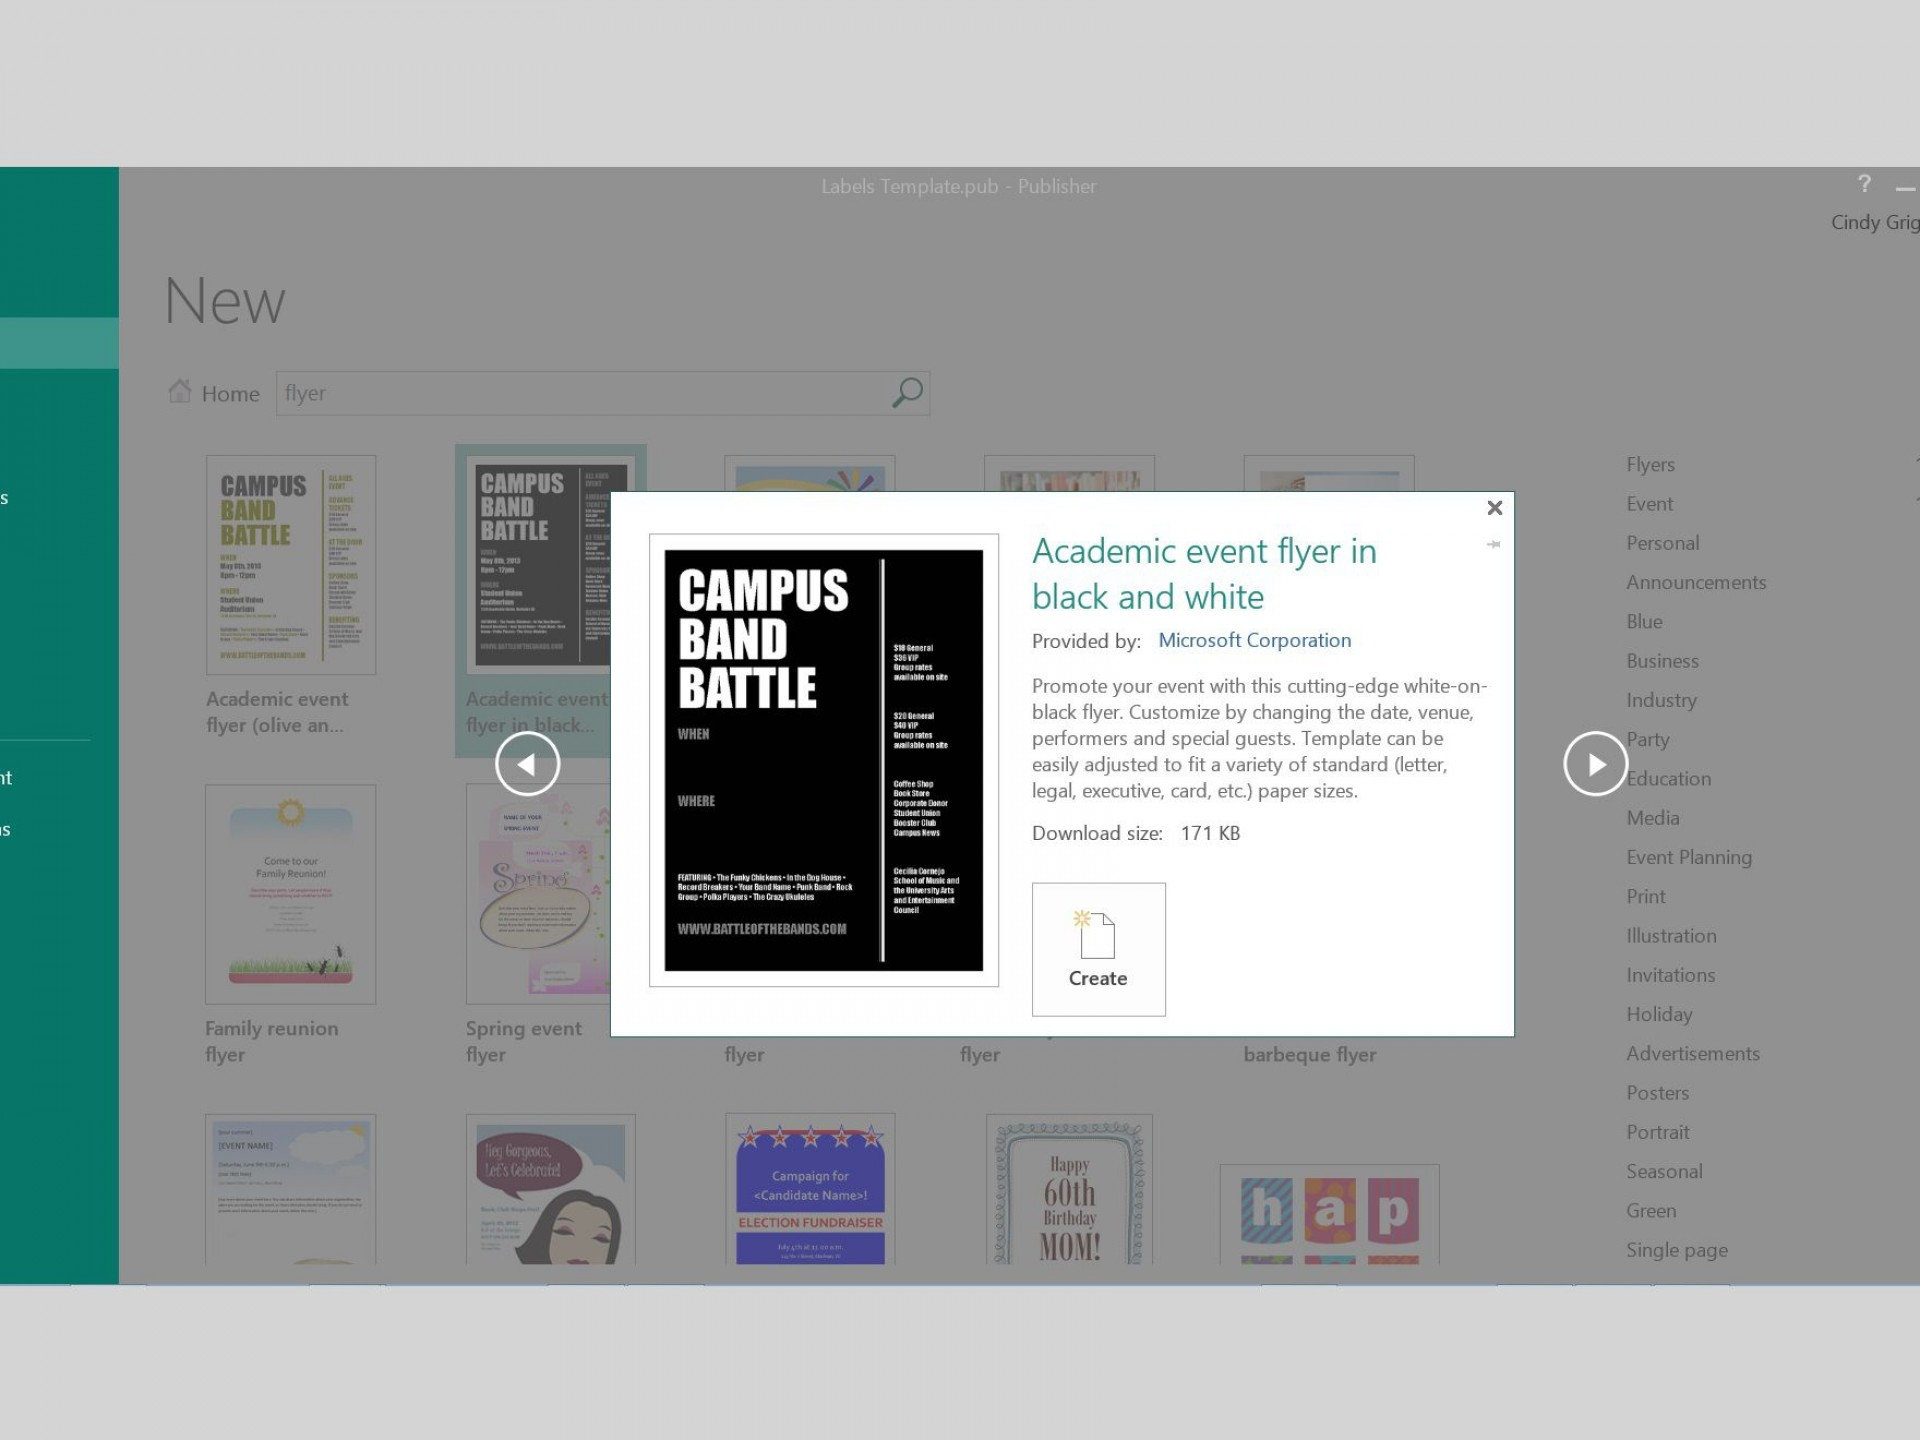 003 Unbelievable M Publisher Newsletter Template Photo  Microsoft Office Free School Email1920